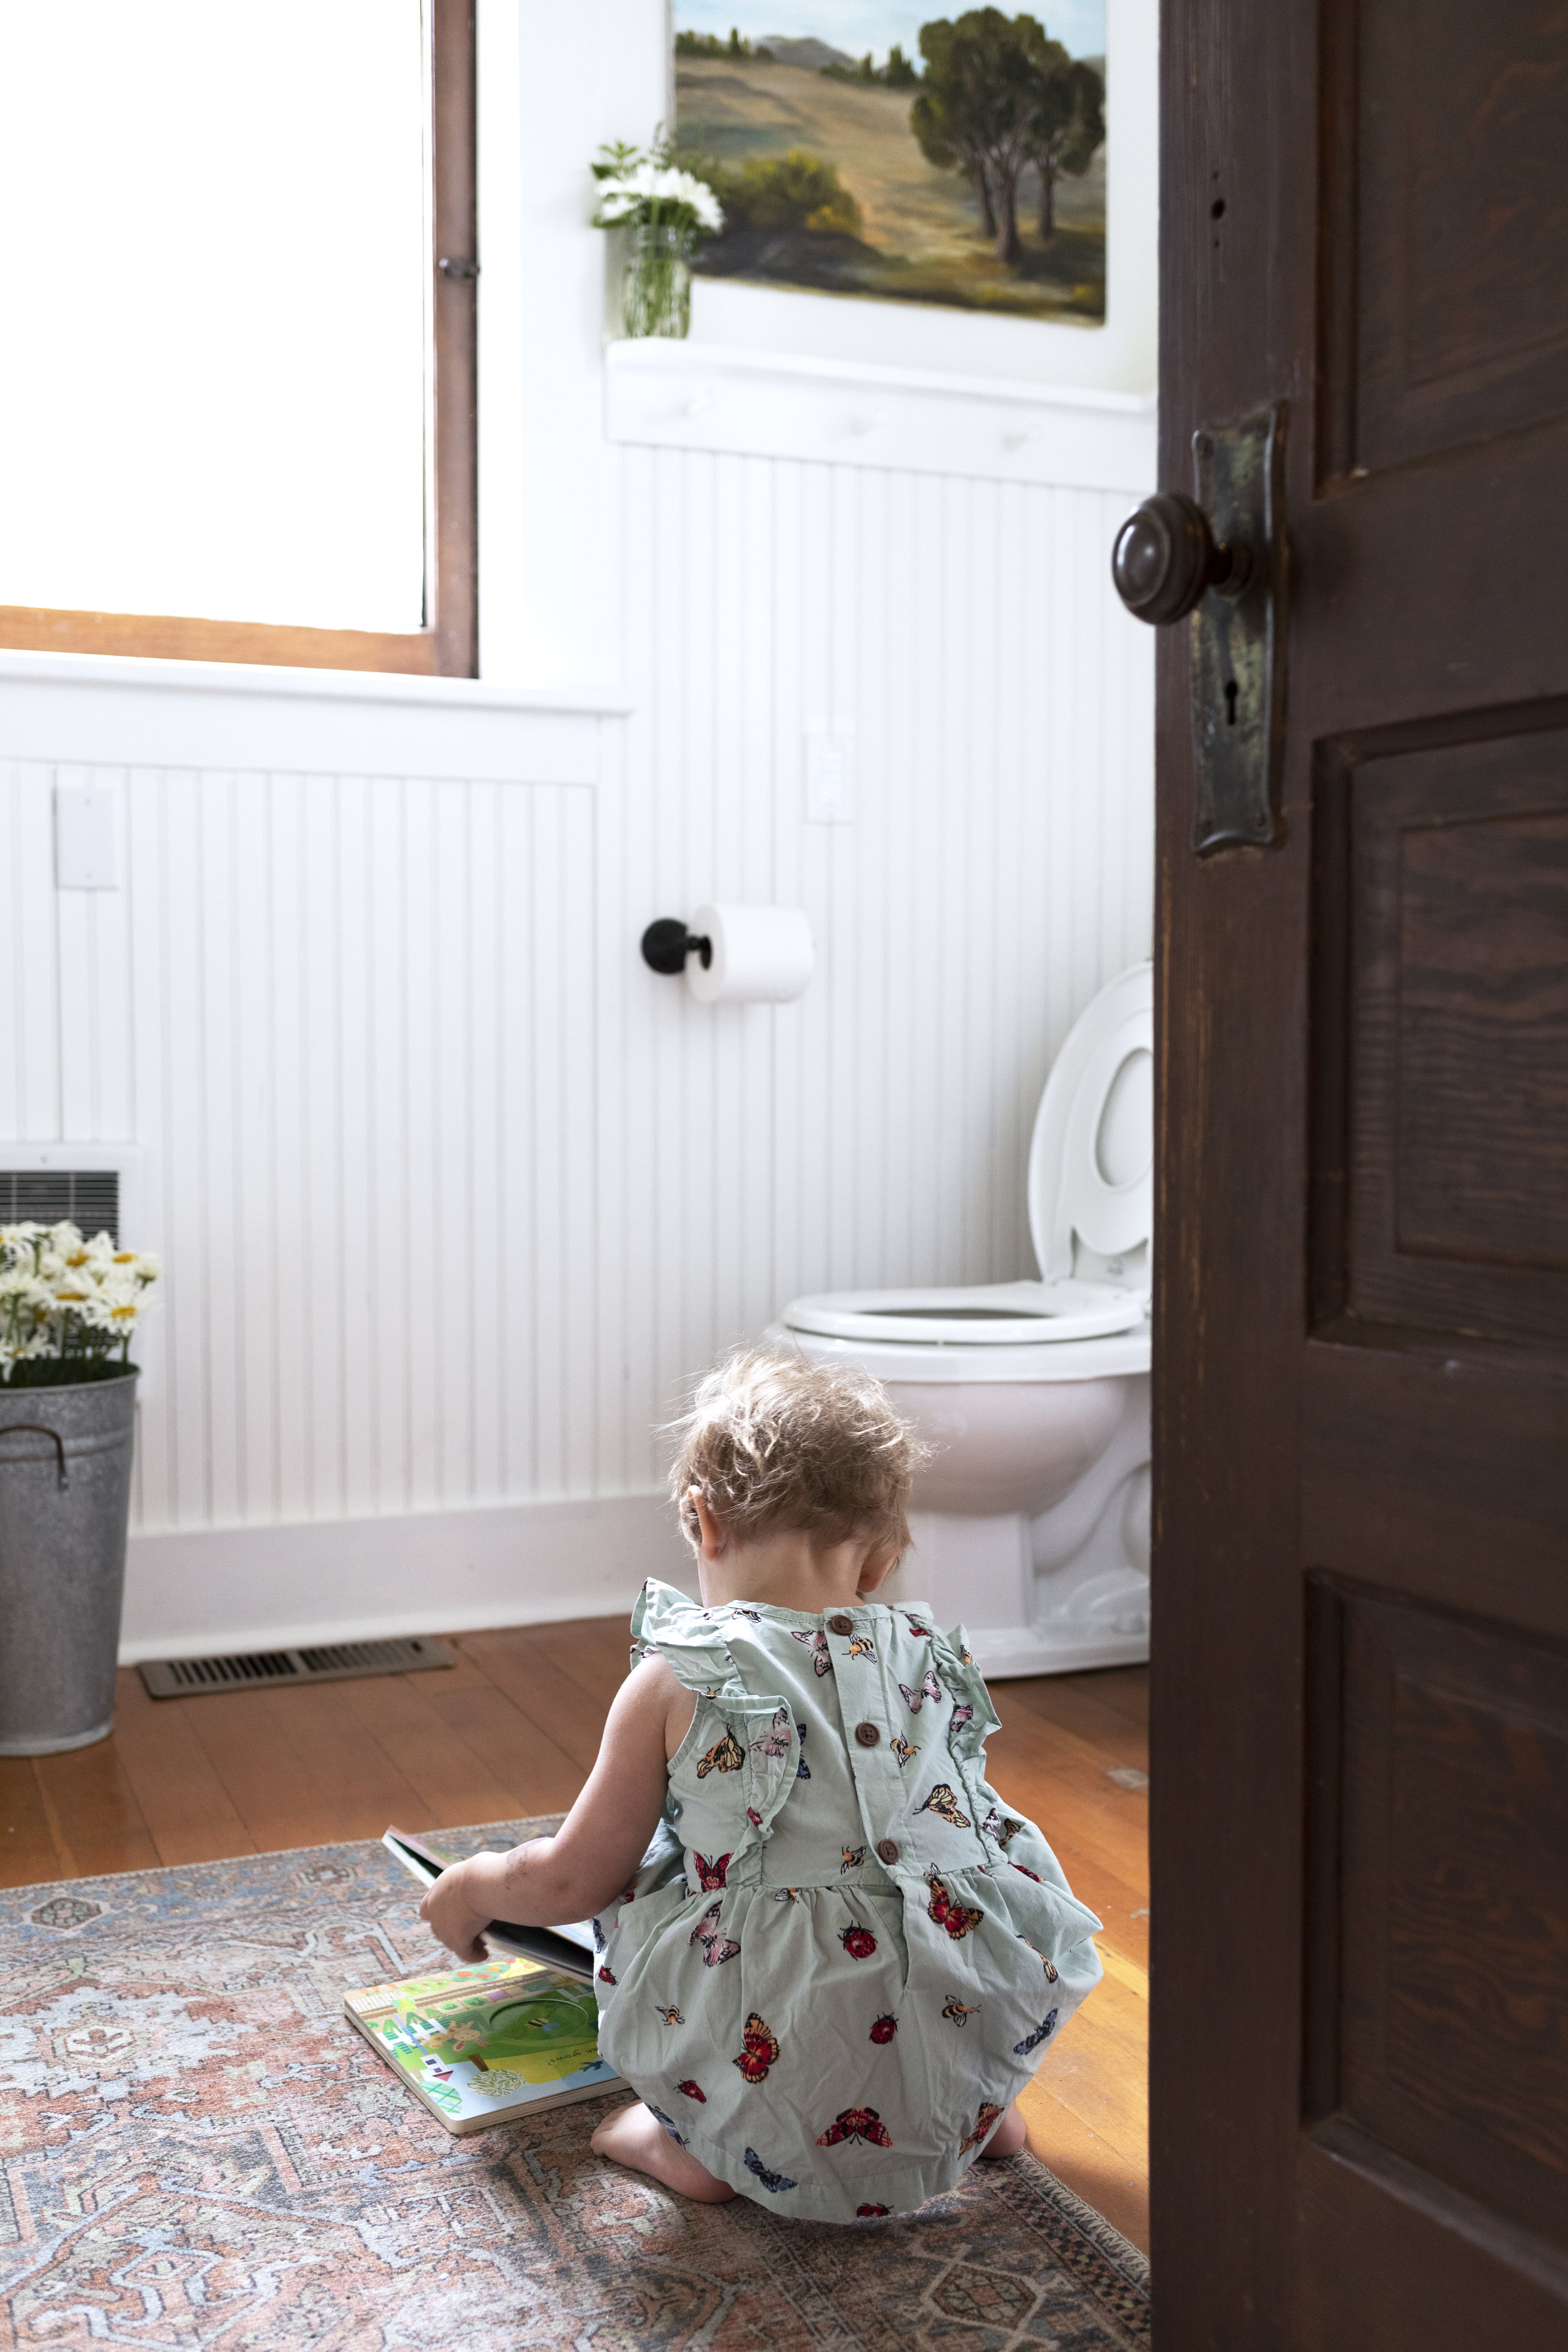 The Grit and Polish - Farmhouse Bathroom Potty Training D 20.jpg